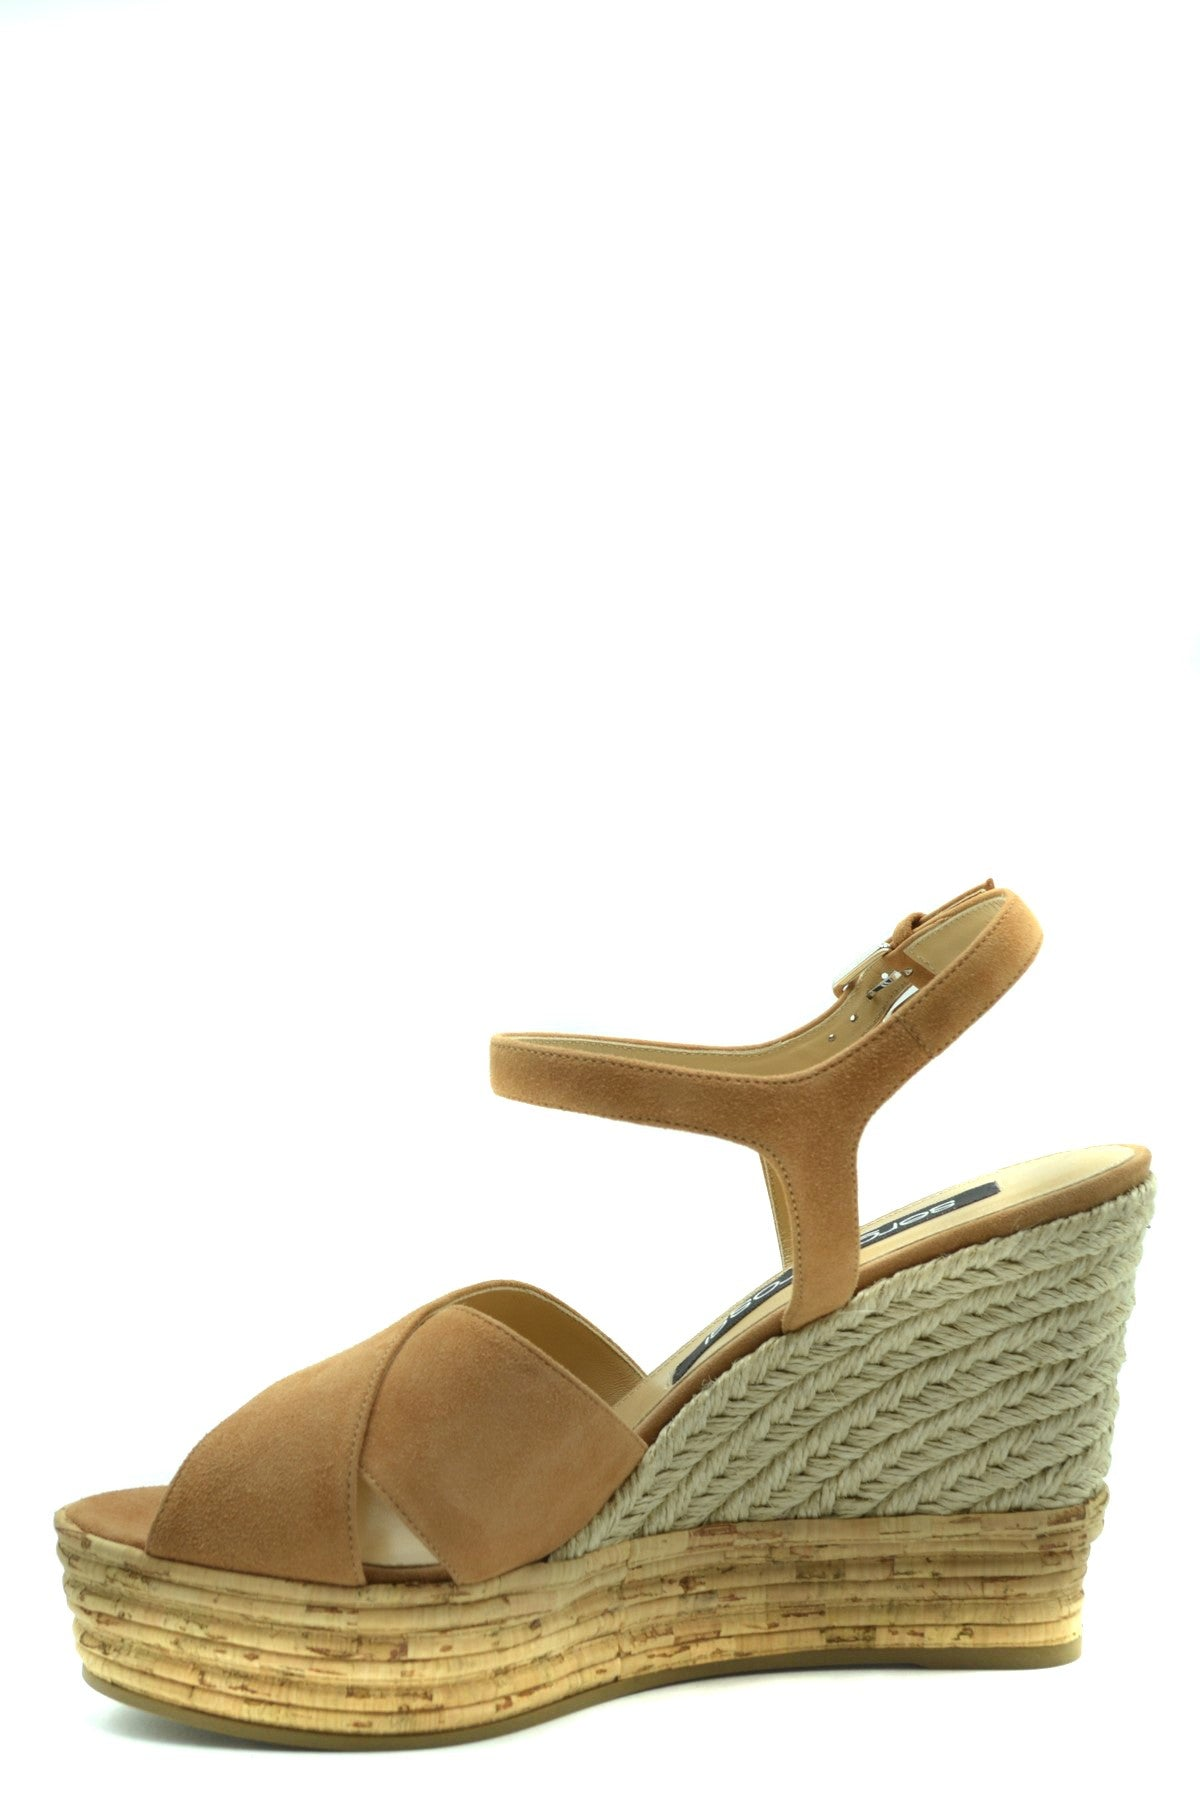 Shoes Sergio Rossi-Women's Fashion - Women's Shoes - Women's Sandals-Product Details Terms: New With LabelMain Color: BeigeType Of Accessory: ShoesSeason: Spring / SummerMade In: ItalyGender: WomanPlatform'S Height: 3,5 CmHeel'S Height: 11 CmSize: EuComposition: Suede 100%Year: 2020Manufacturer Part Number: A89560 Mcaz01-Keyomi-Sook